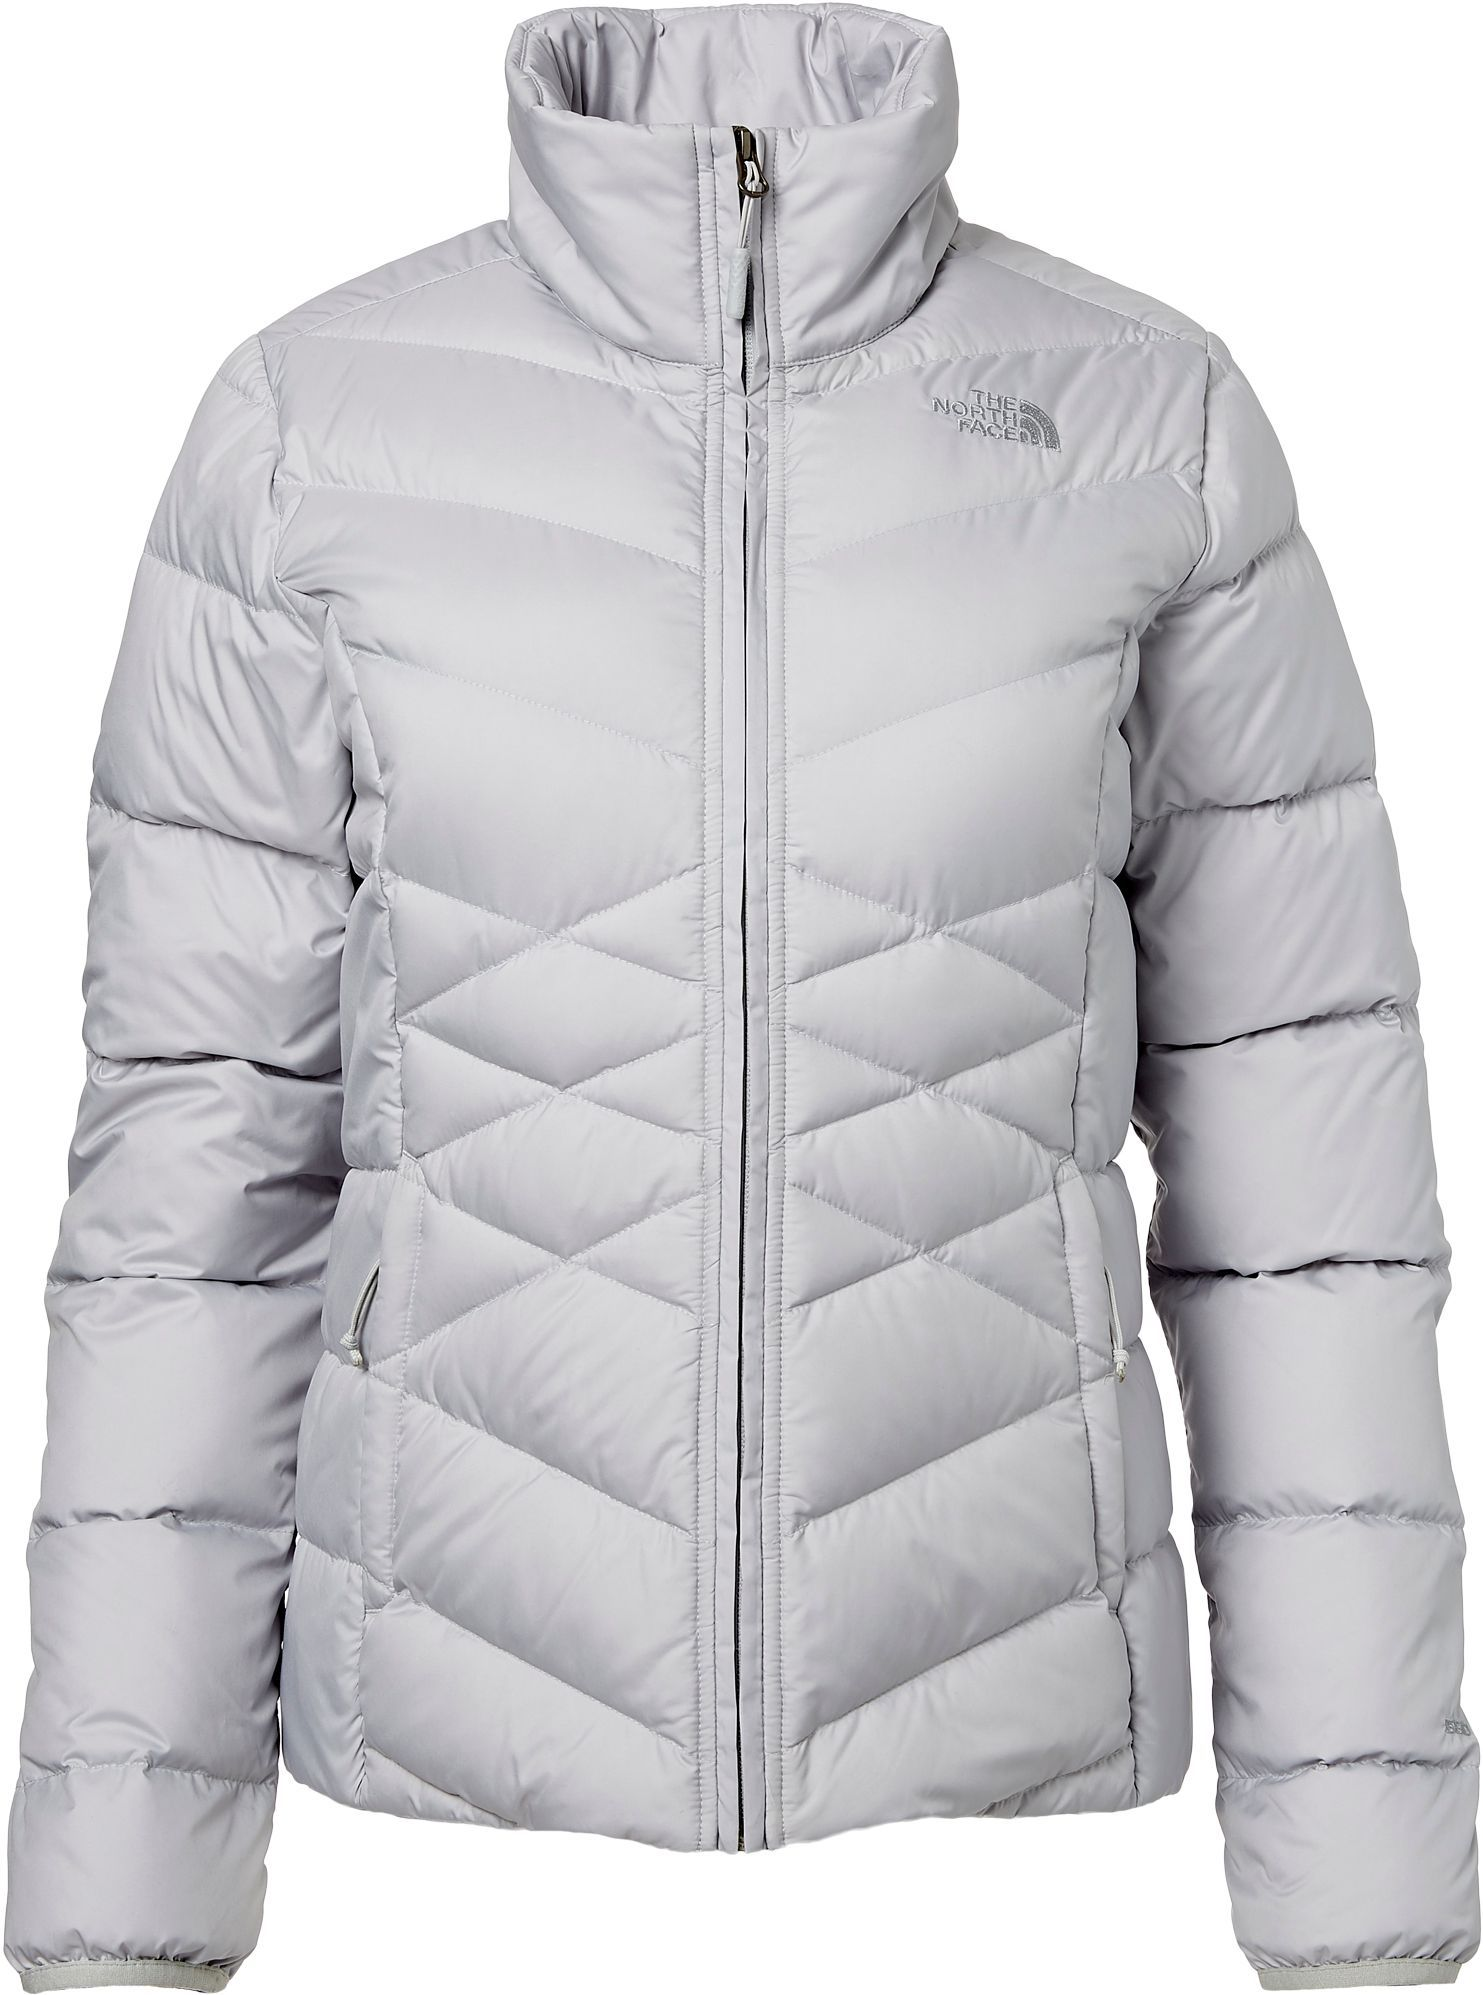 0e71a3d0631 The North Face Women's Alpz Down Jacket, Size: Medium, Gray ...